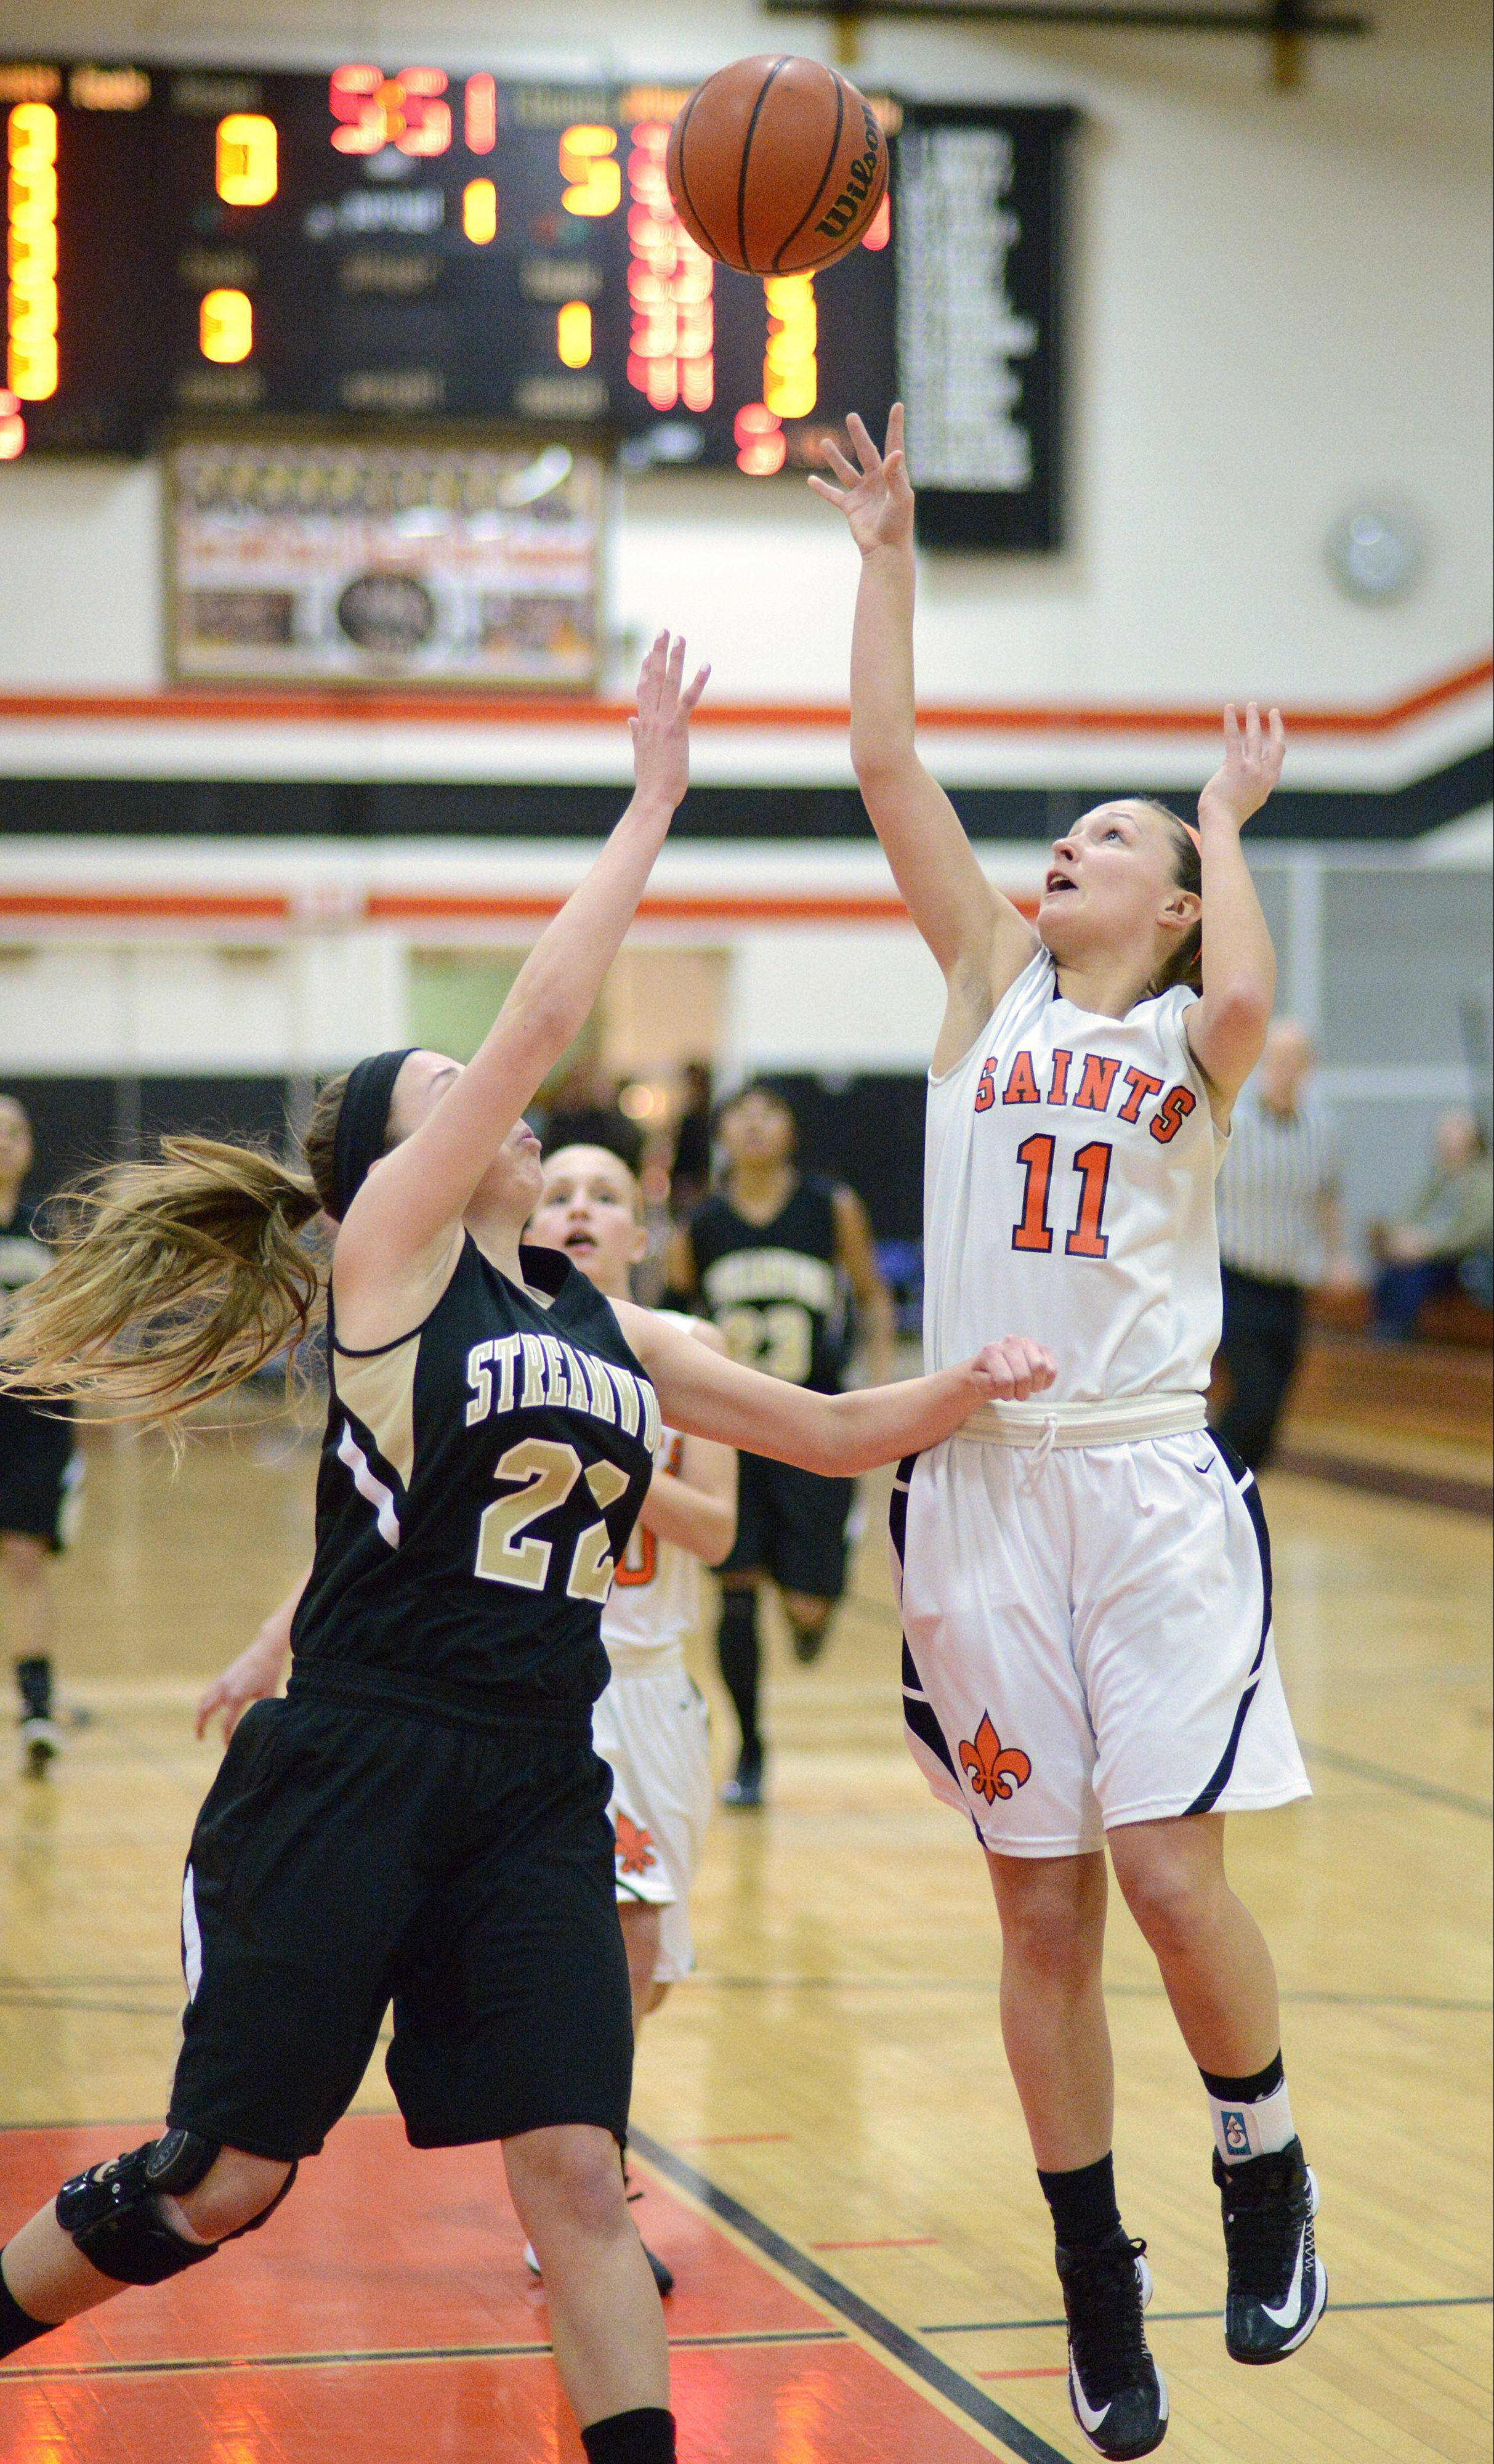 St. Charles East's Carly Pottle shoots over Streamwood's Holley Foret Tuesday in St. Charles.